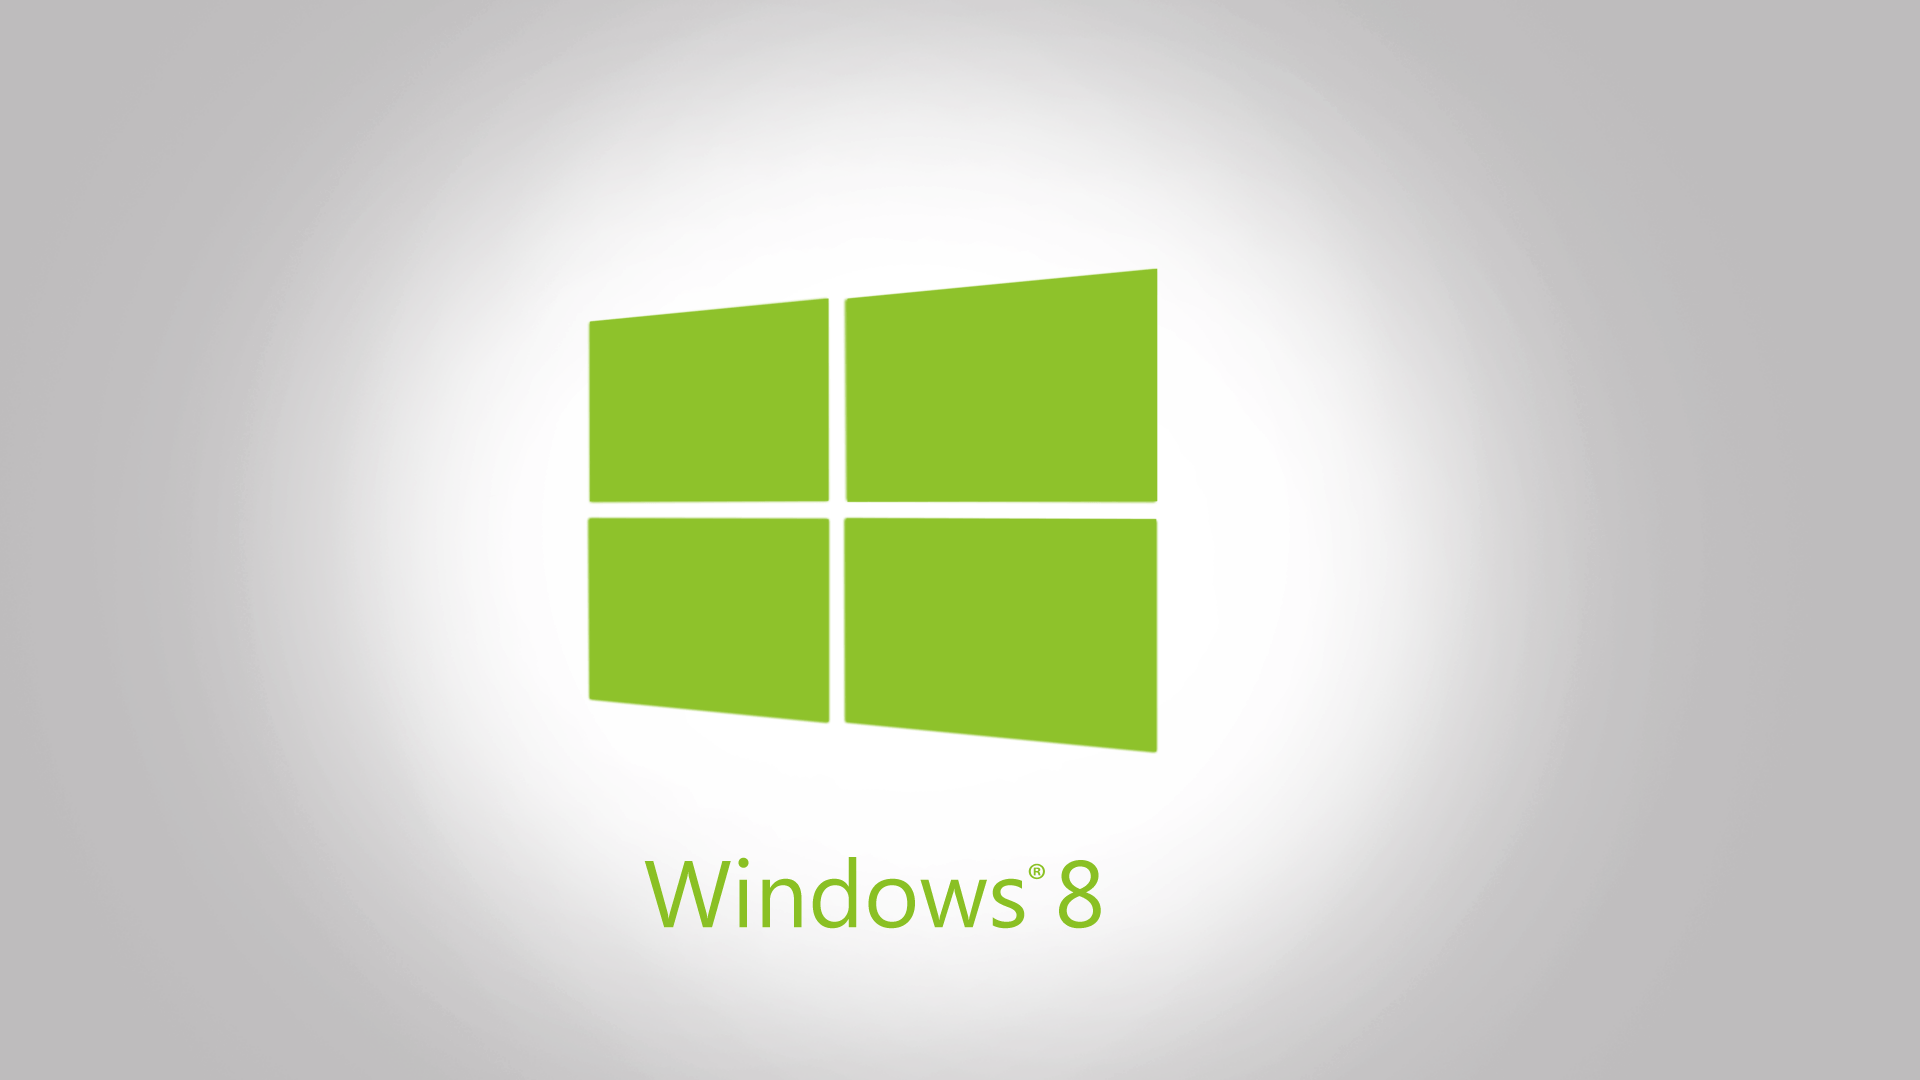 Windows 8 Wallpaper Hd 1080P Free Download